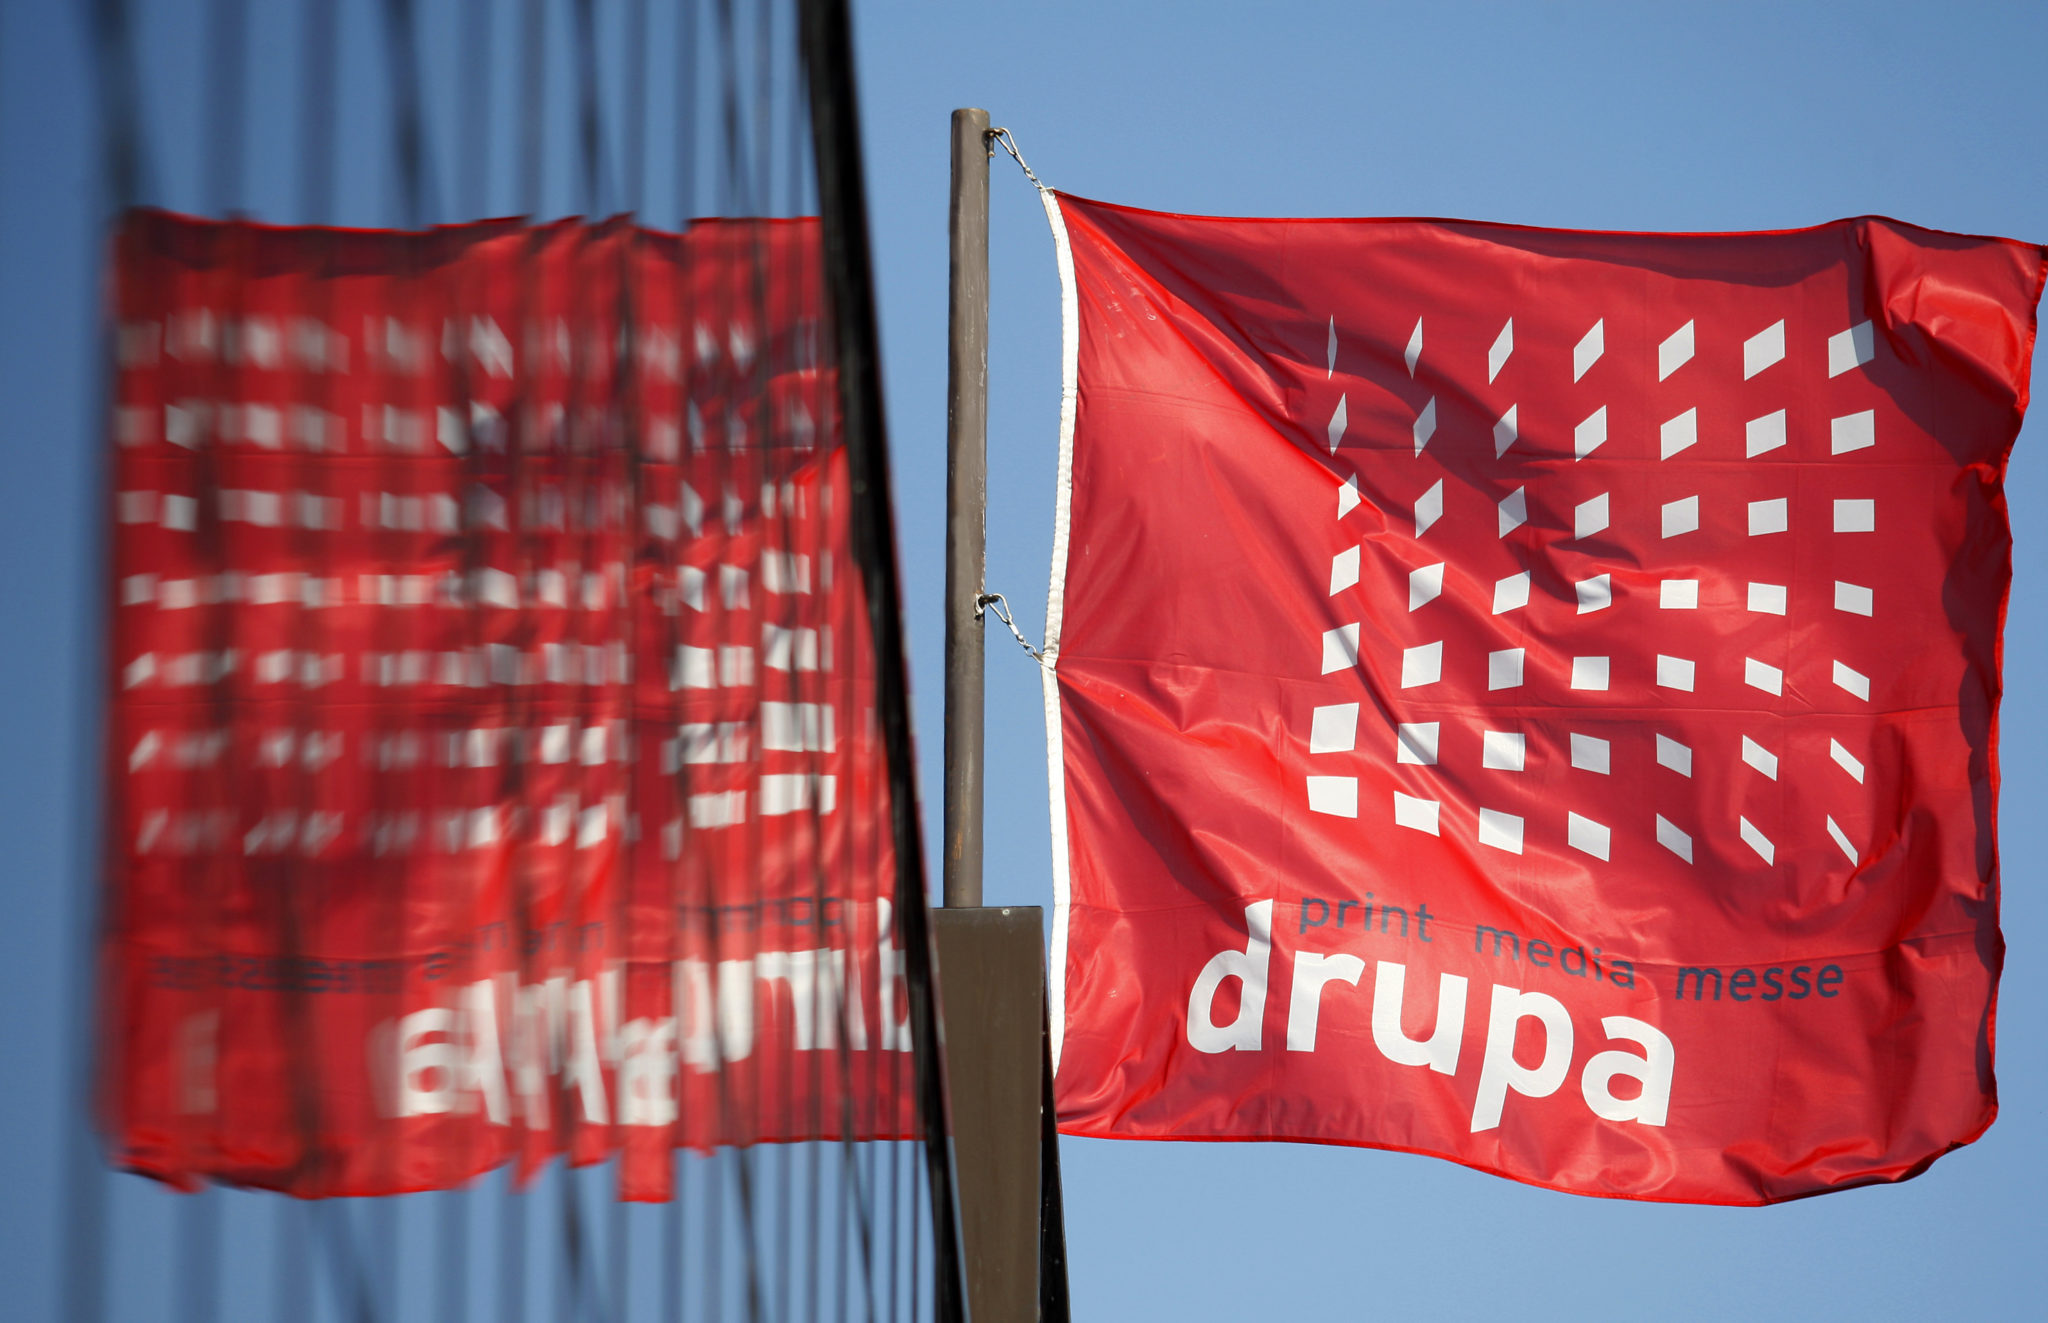 drupa Preview to Start with Panel Discussion and Live Web Session